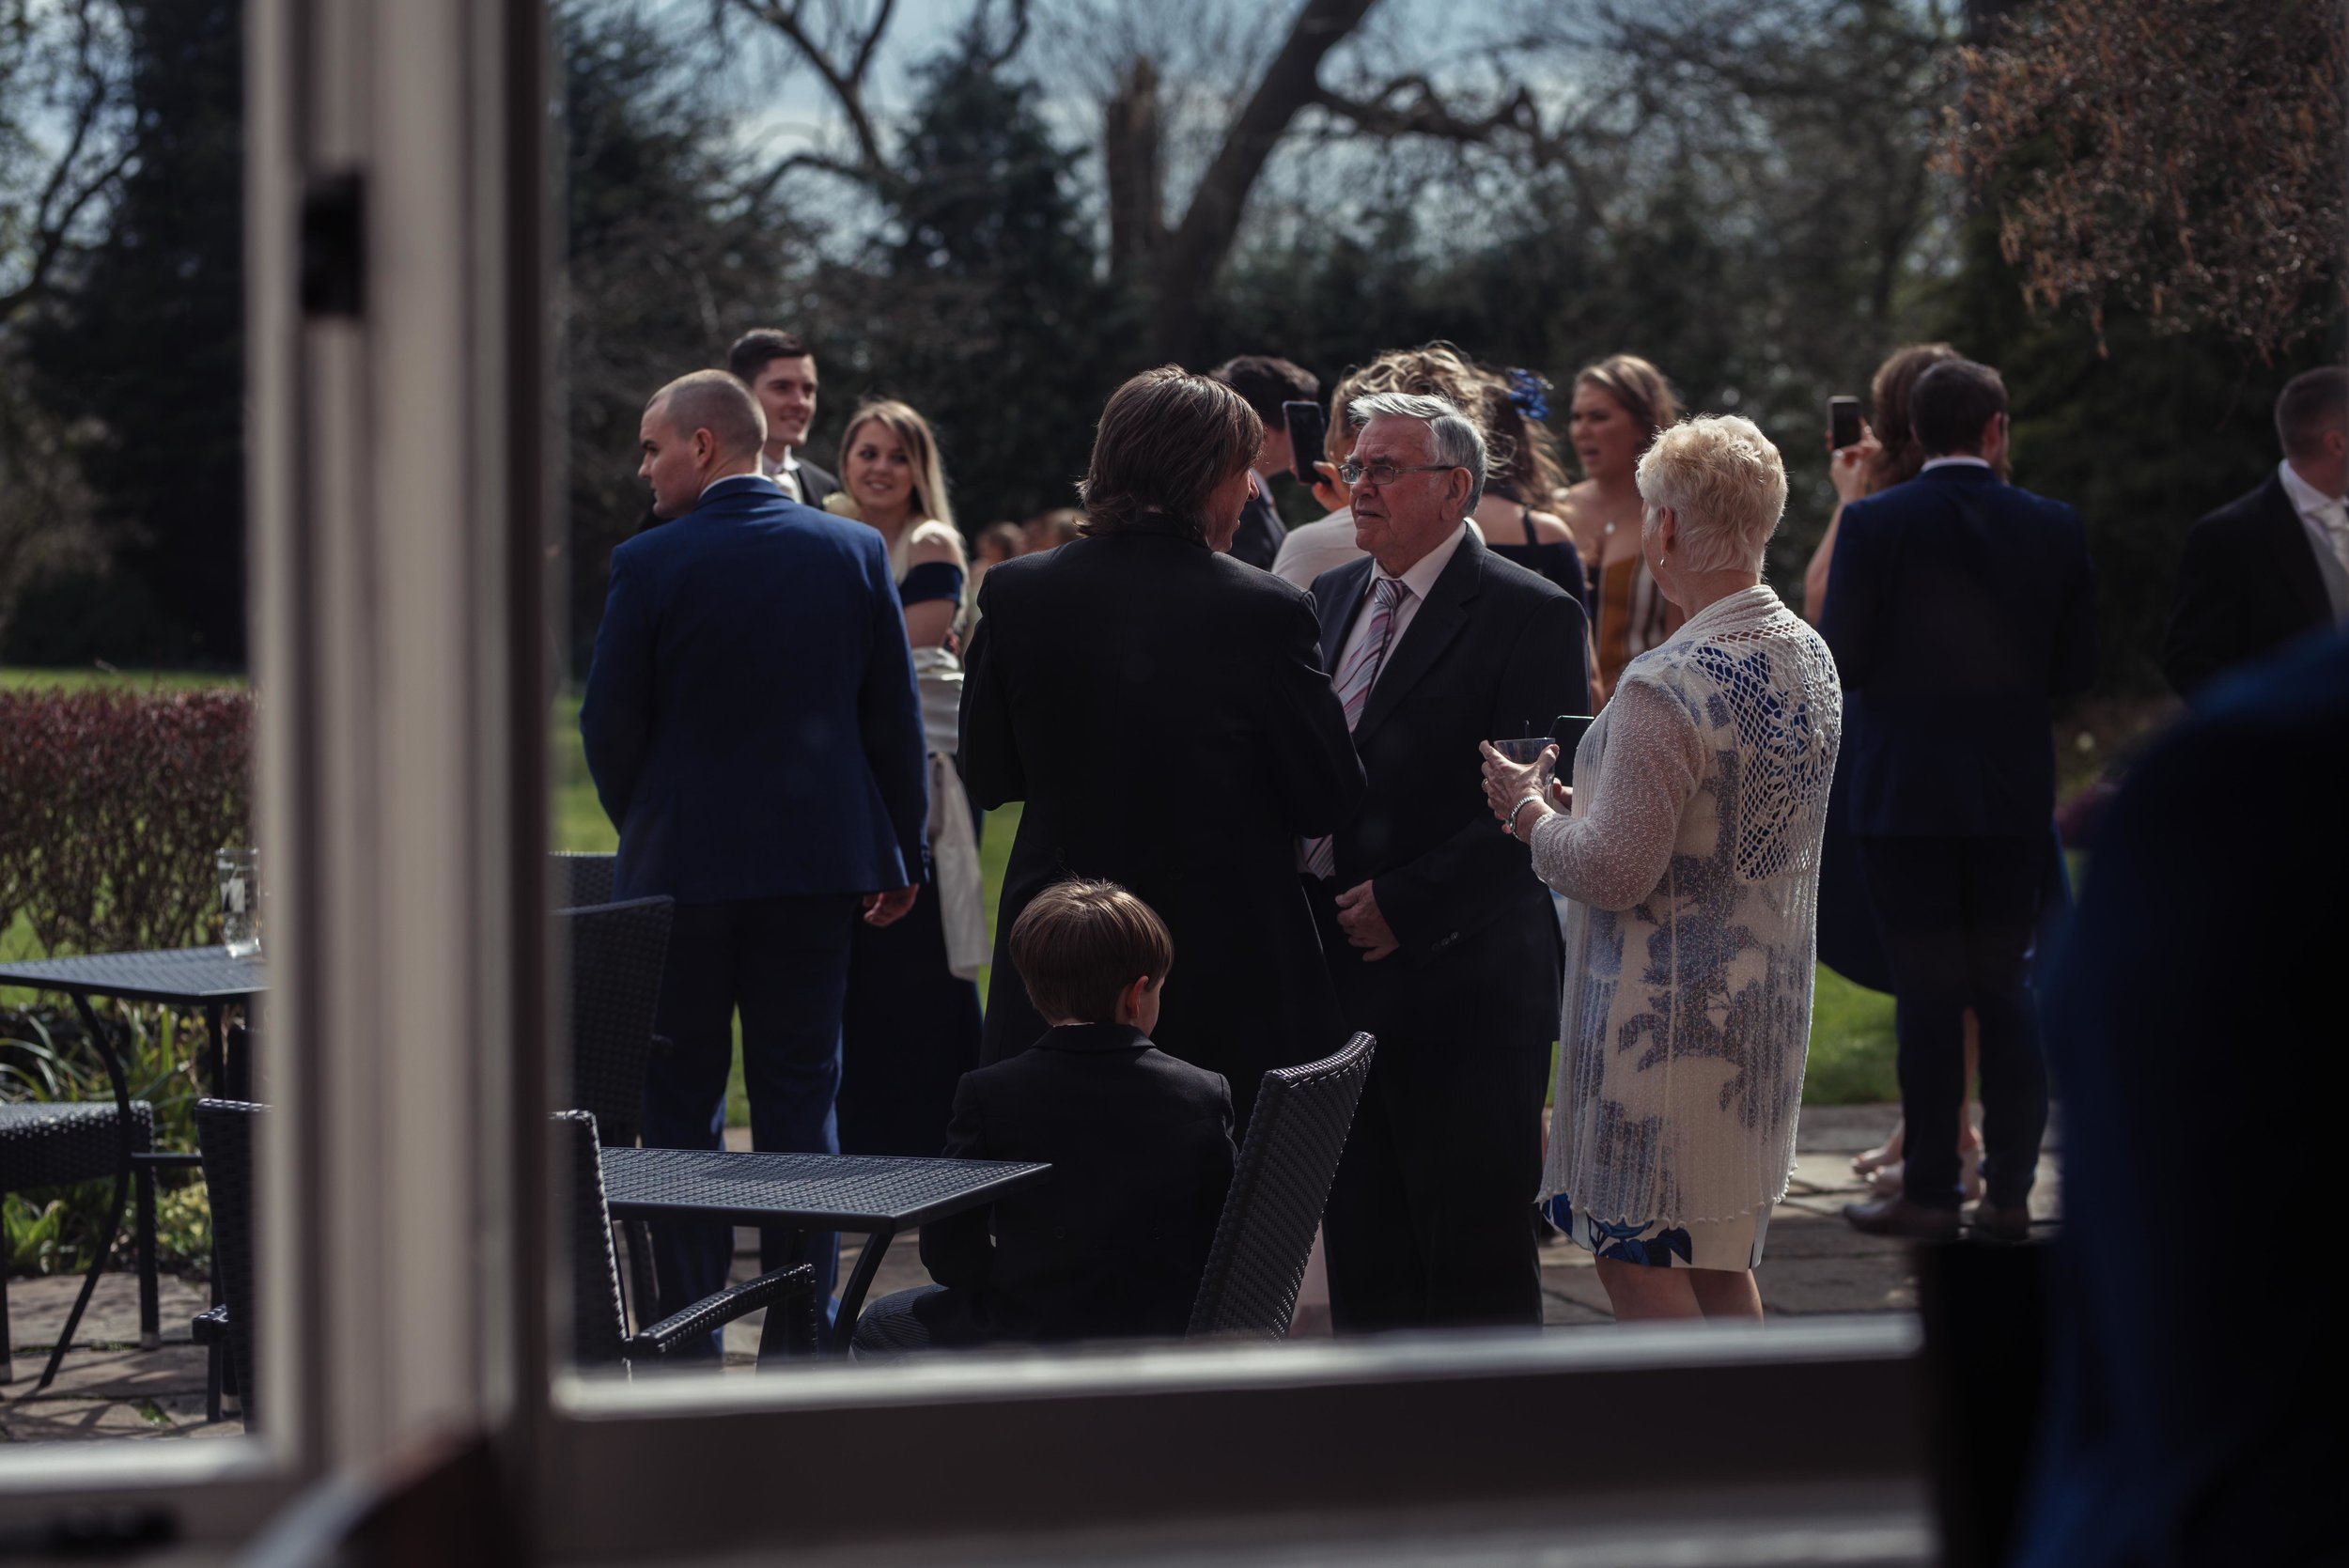 guests gather outside the venue for their cumbria wedding photography